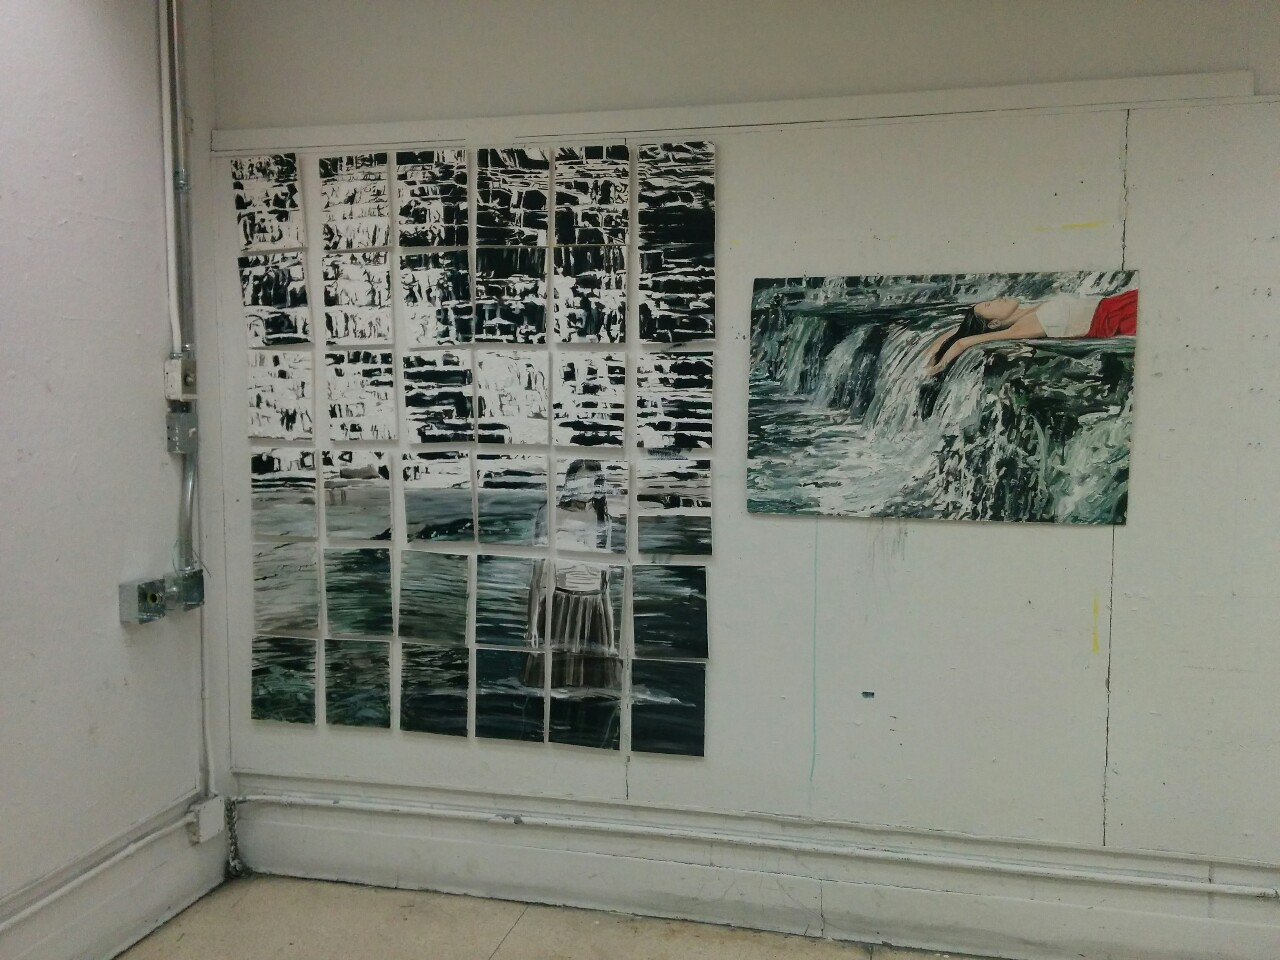 """Paintings of pictures from the """"#Dreams (waterfall)"""" gallery done by Brenda Kara Tse. You can find more of her work at http://www.brendakaratse.tumblr.com"""